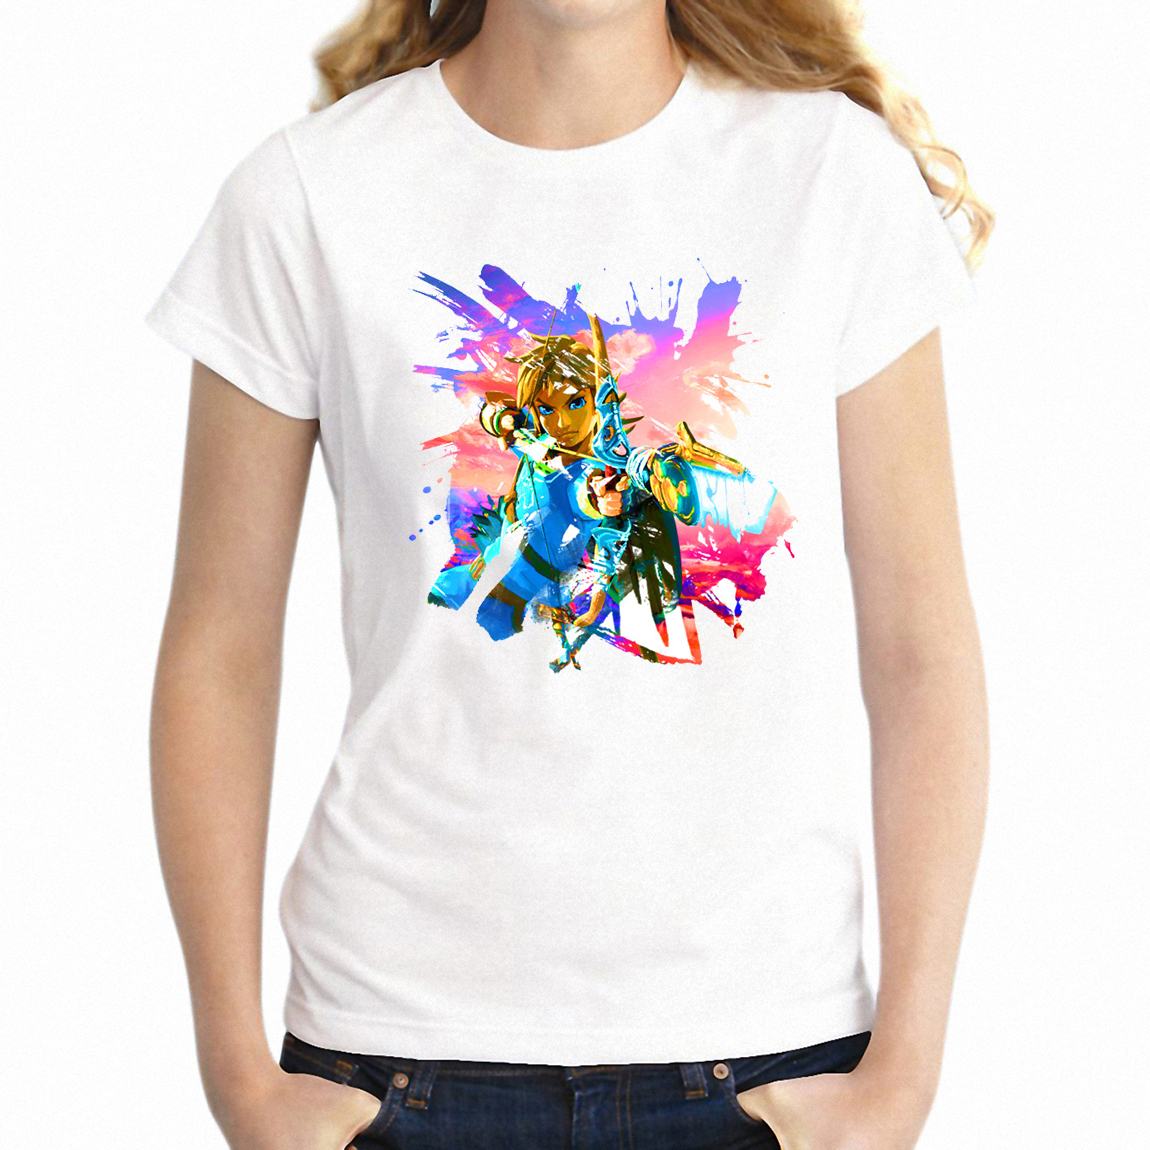 T-shirt Zelda Breath of The Wild Link Battle